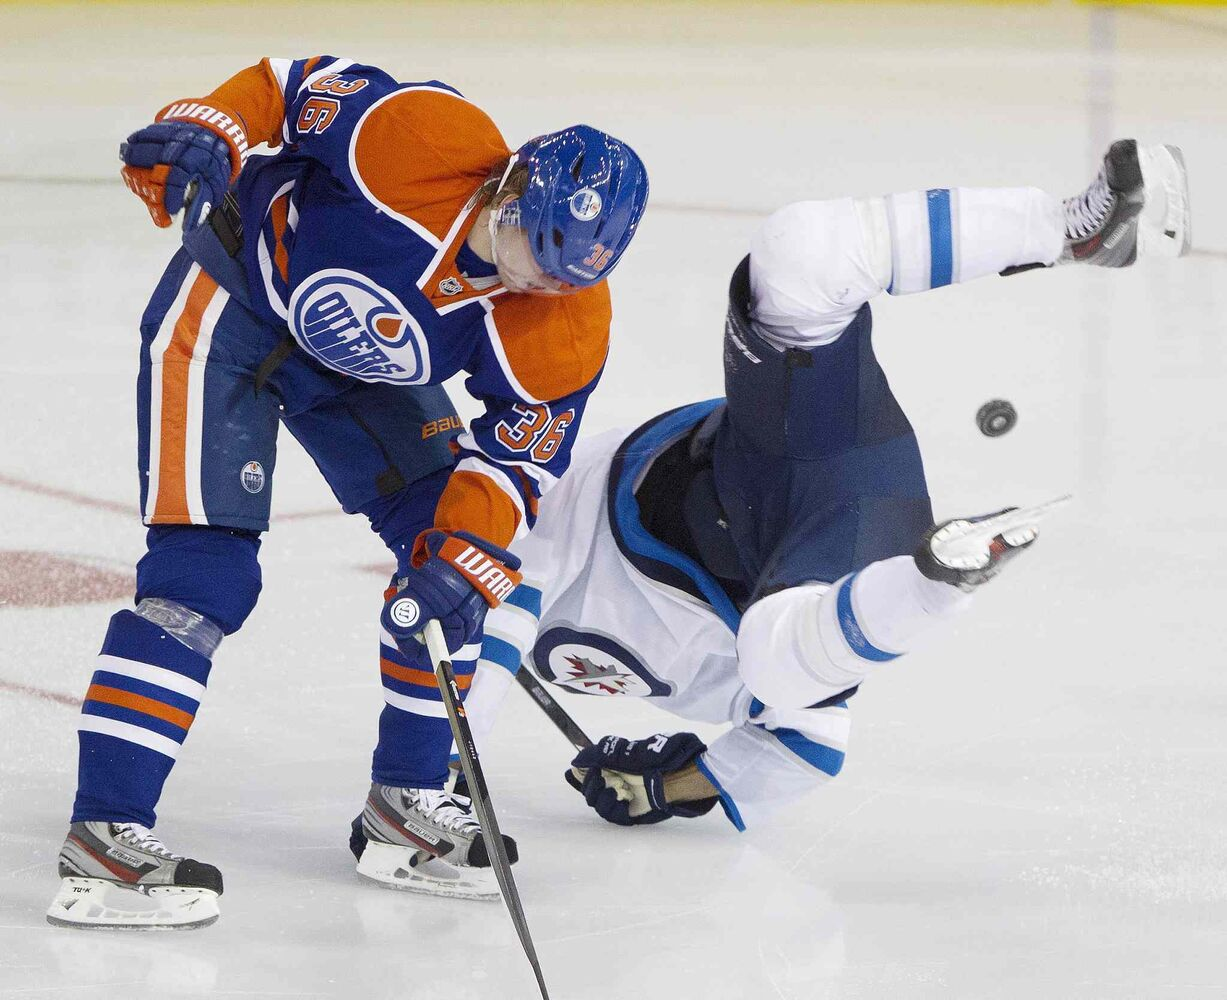 Evander Kane (9) is upended by Edmonton Oilers Philip Larsen (36) during the third period. (Jason Franson / The Canadian Press)